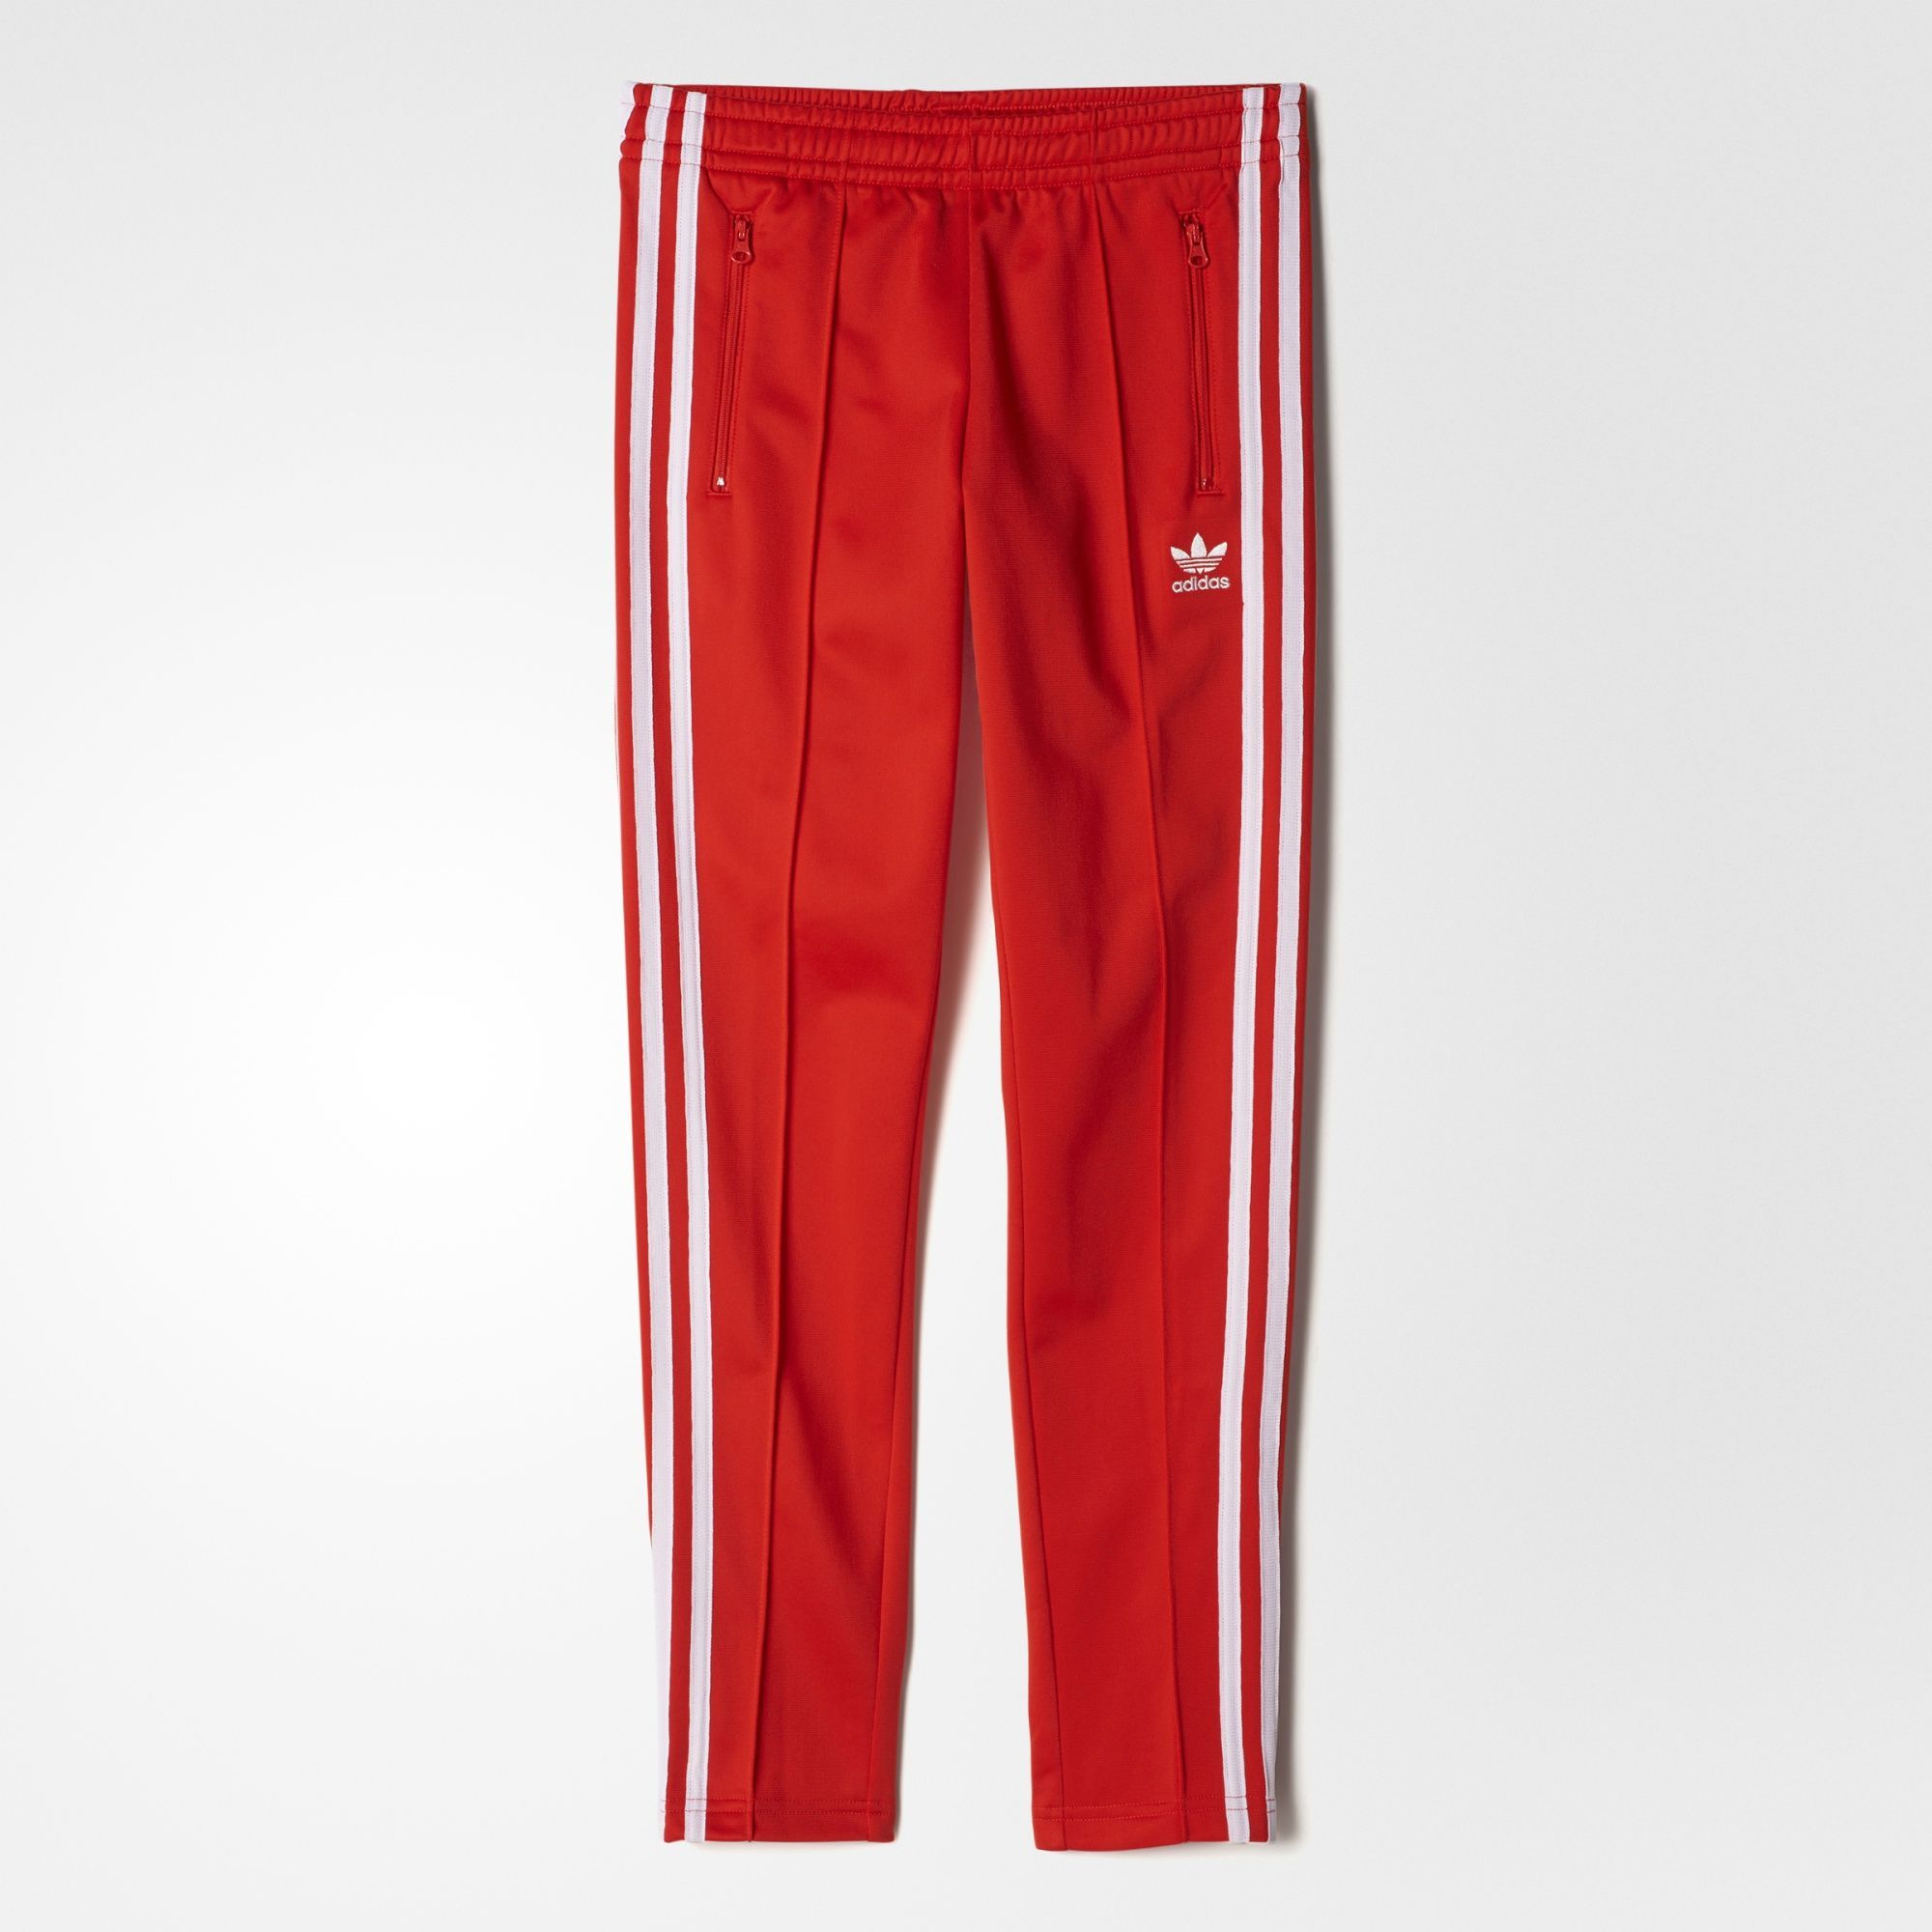 8301fd6c3 adidas - SST Pants | bday gifts in 2019 | Red adidas pants, Pants ...